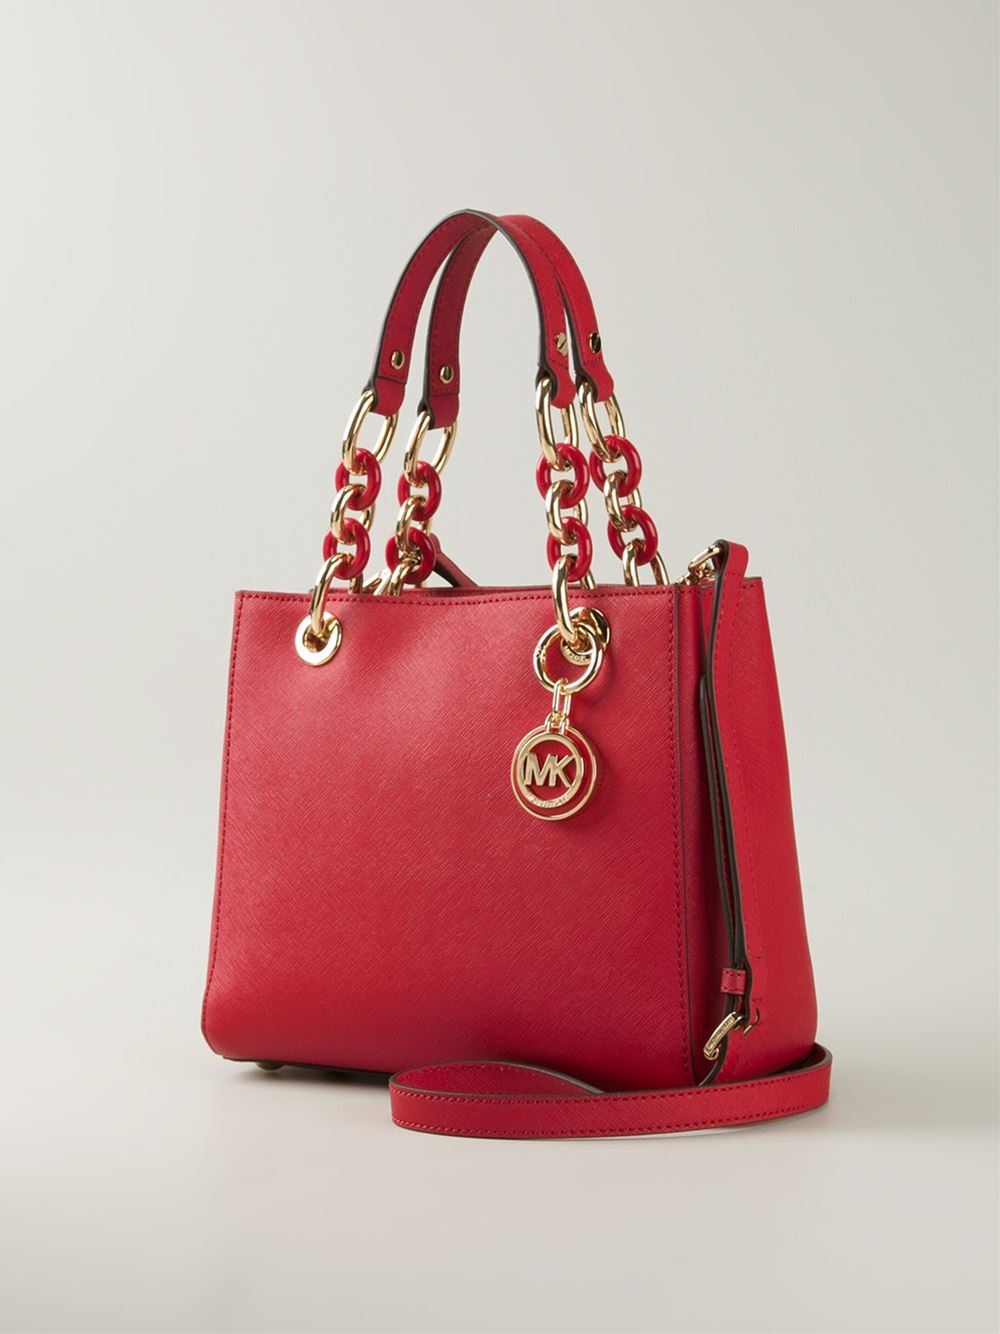 16dbac641829 ... discount michael michael kors cynthia leather bag in red lyst 61fb9  88d72